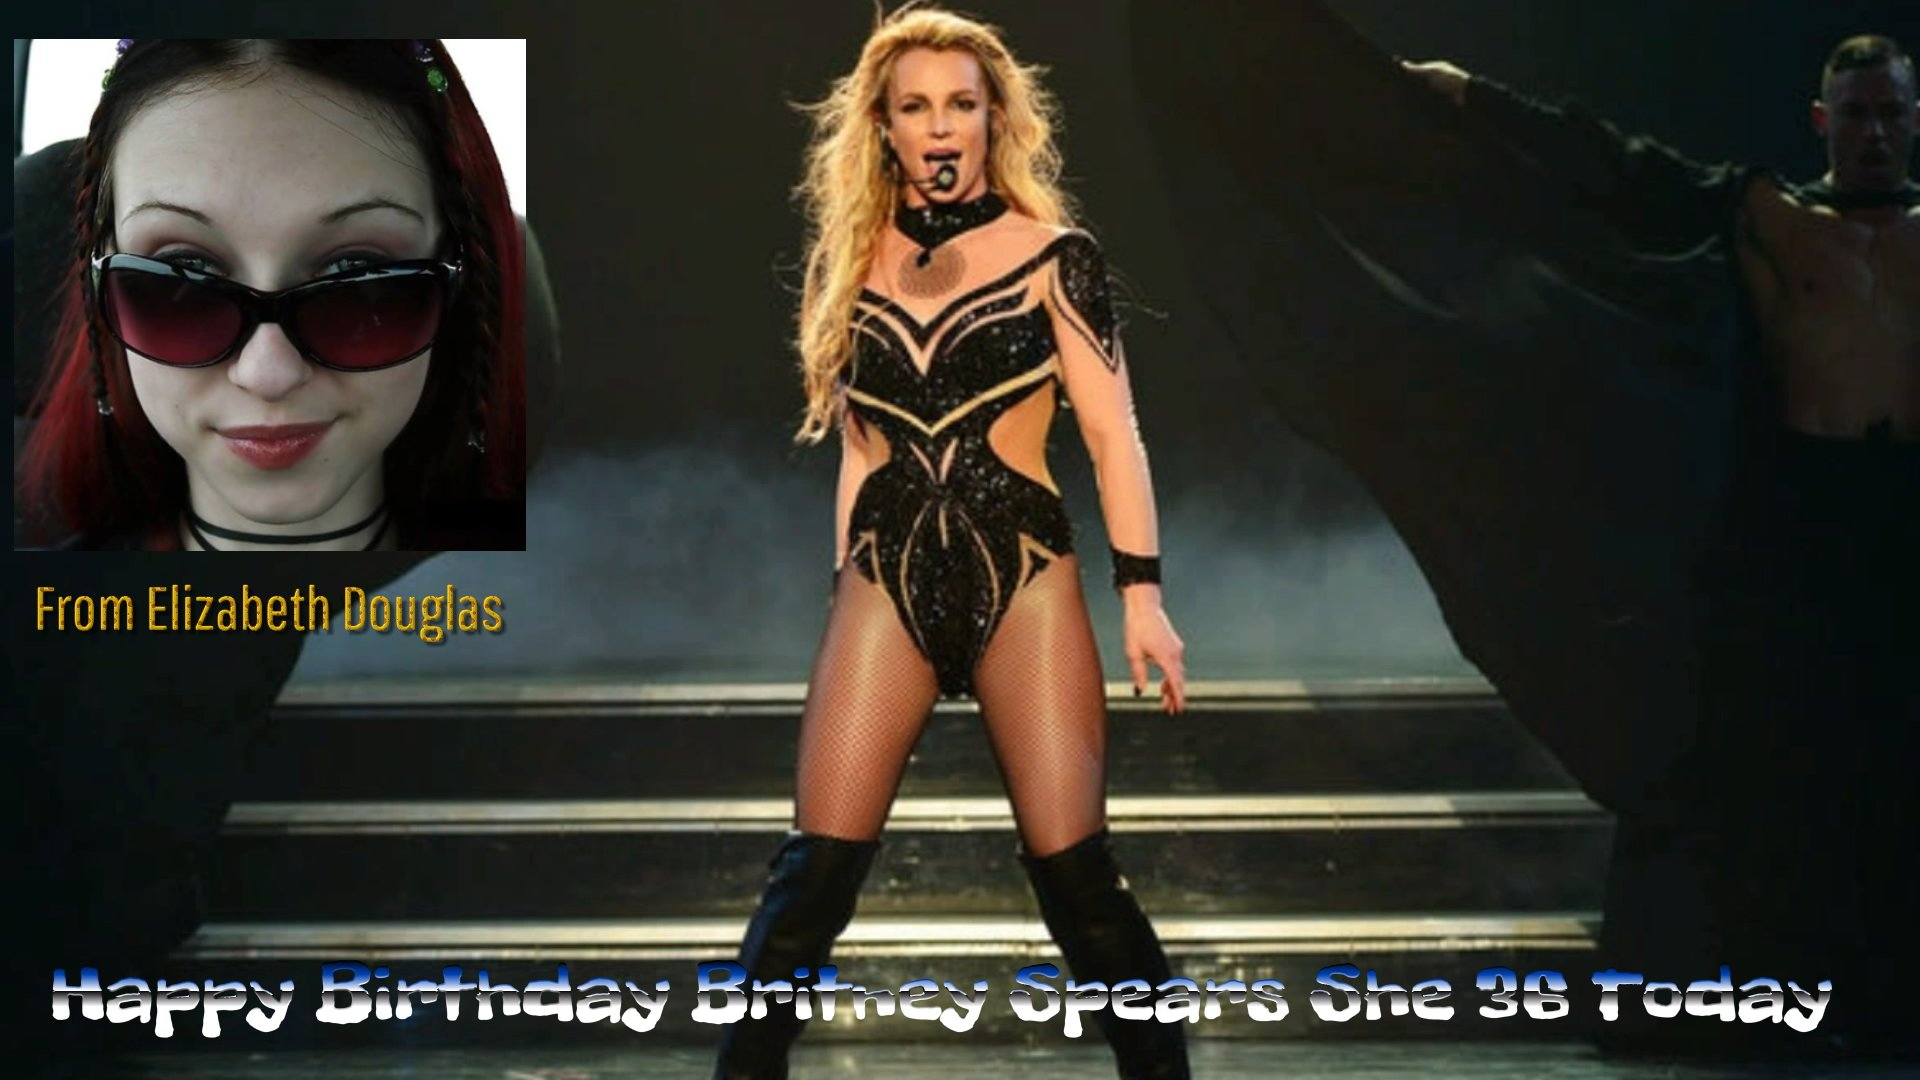 Happy birthday britney spears from Elizabeth Douglas She 36 today. Keep on rocking britney spears